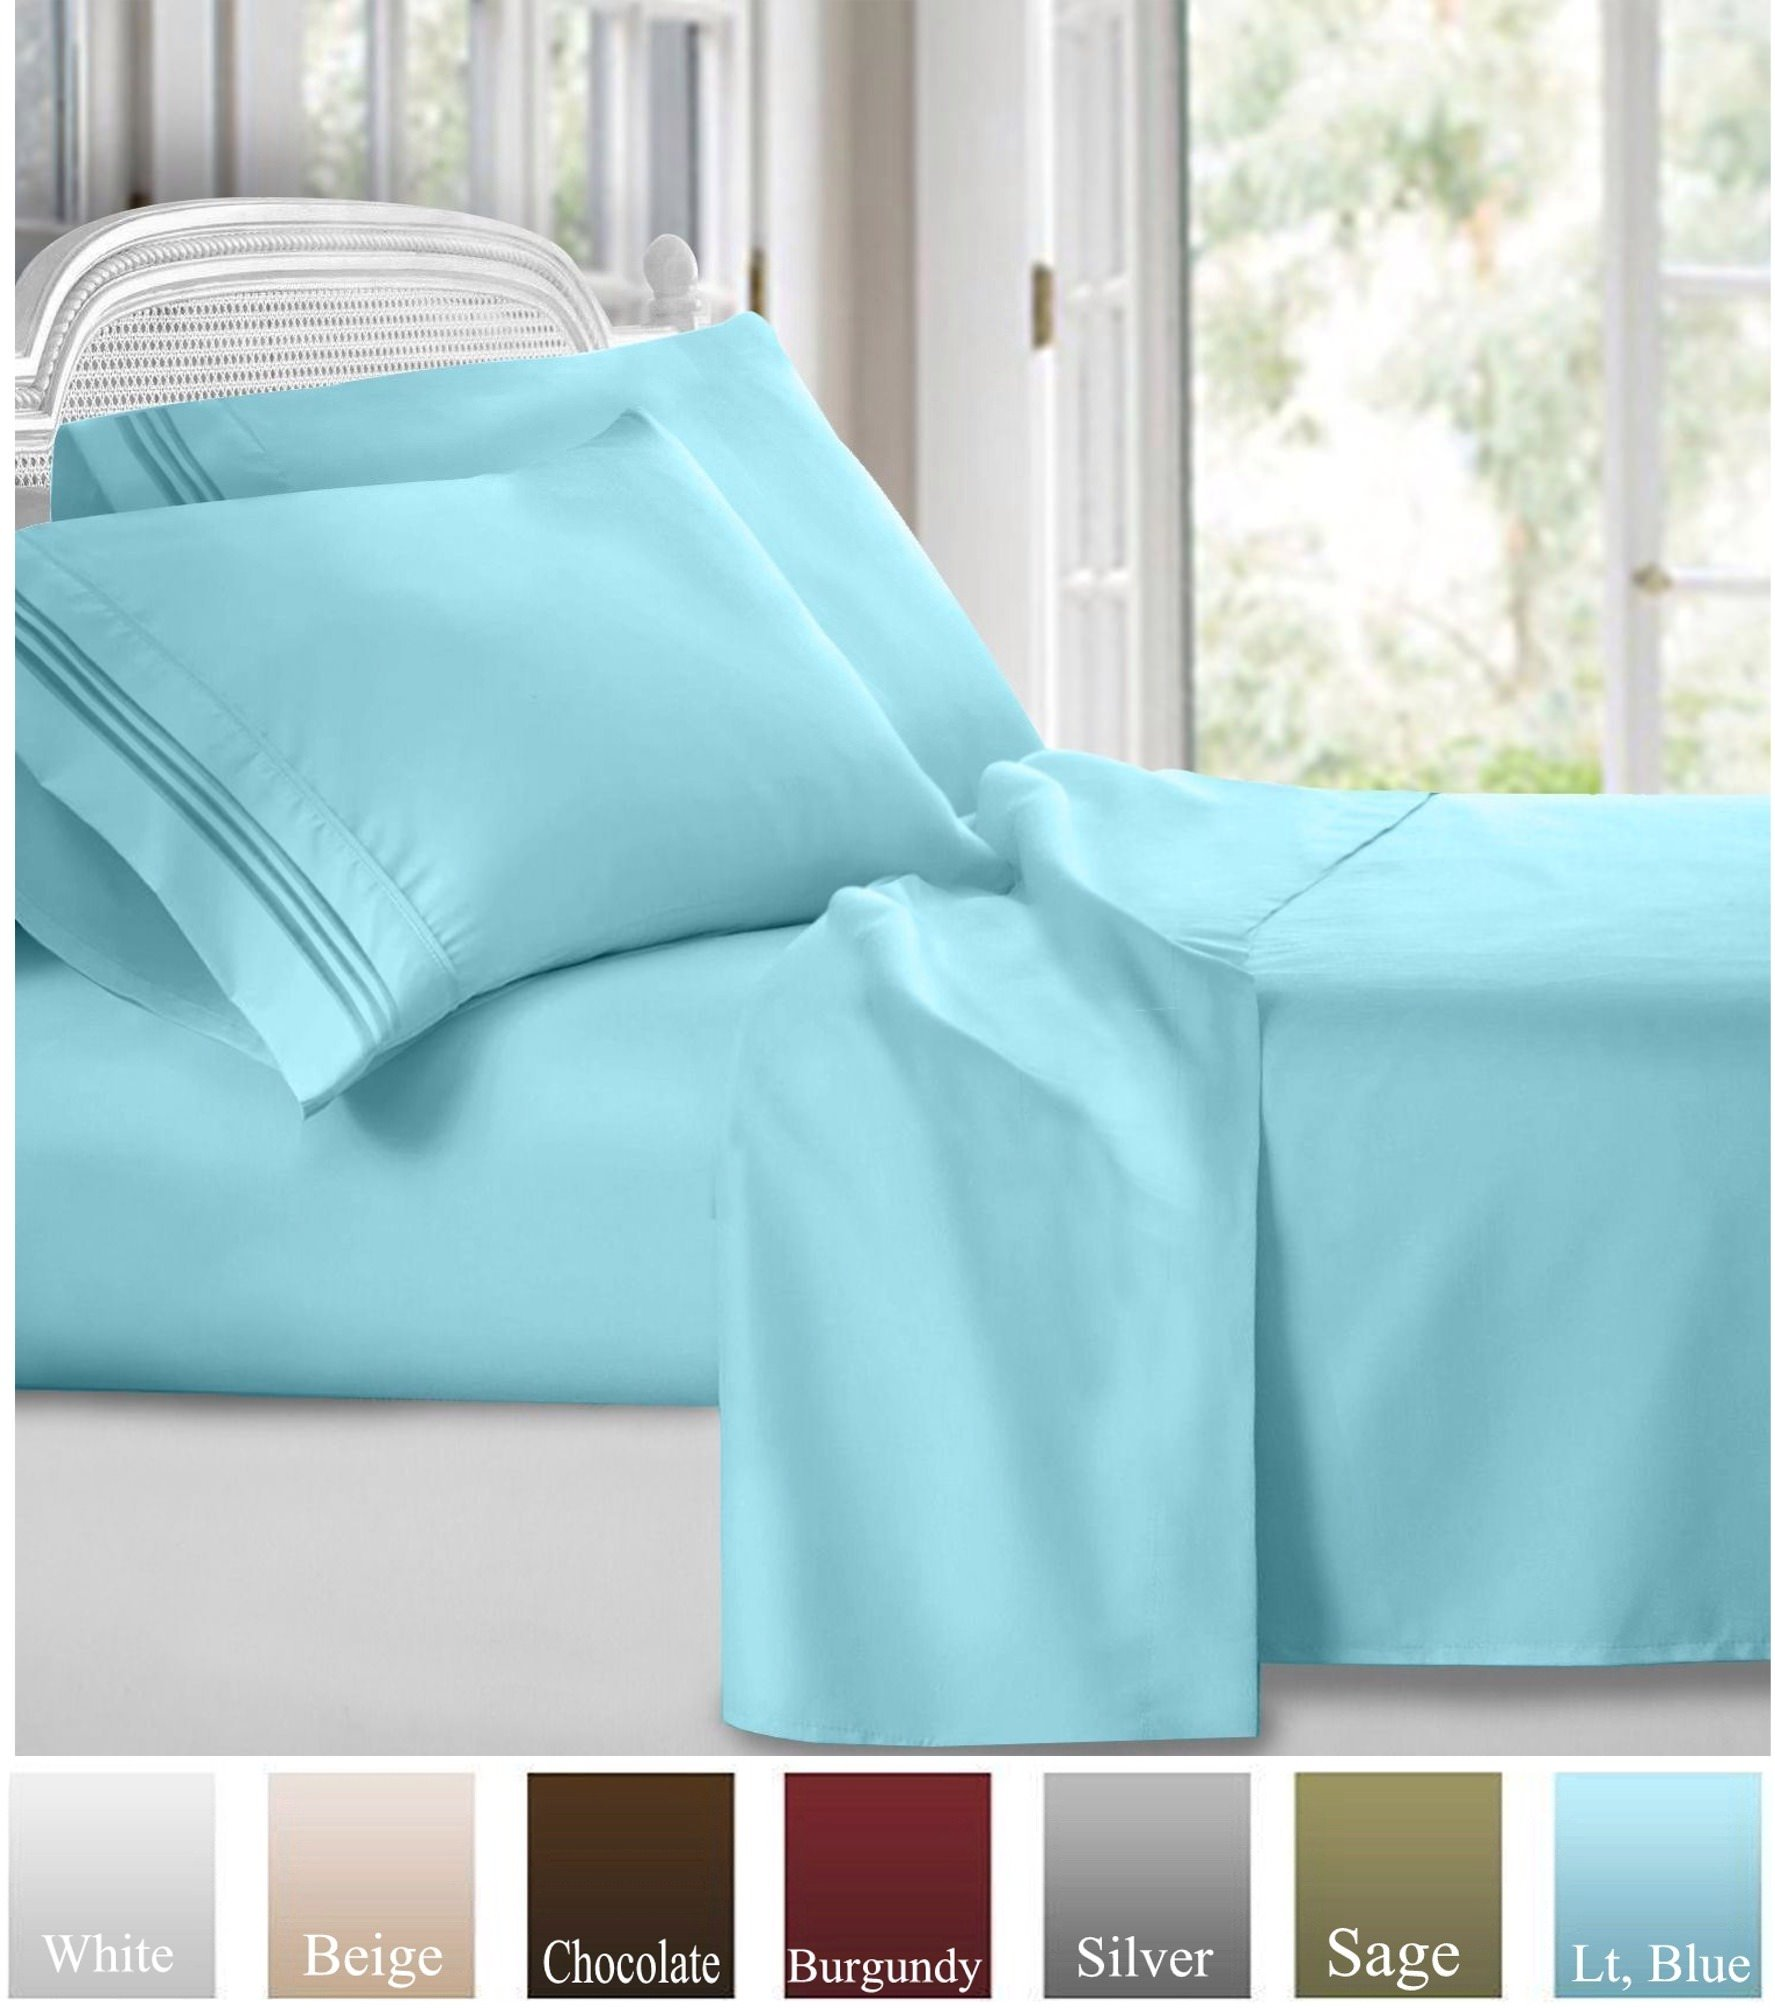 Ruthy's Textile Bed Sheet Set - Hotel Luxury Brushed Microfiber 1800 Bedding - Wrinkle, Fade, Stain Resistant - Hypoallergenic, Soft - Deep Pockets Sheets & Pillow Case Set - 4 Piece (Lt, Blue, King)